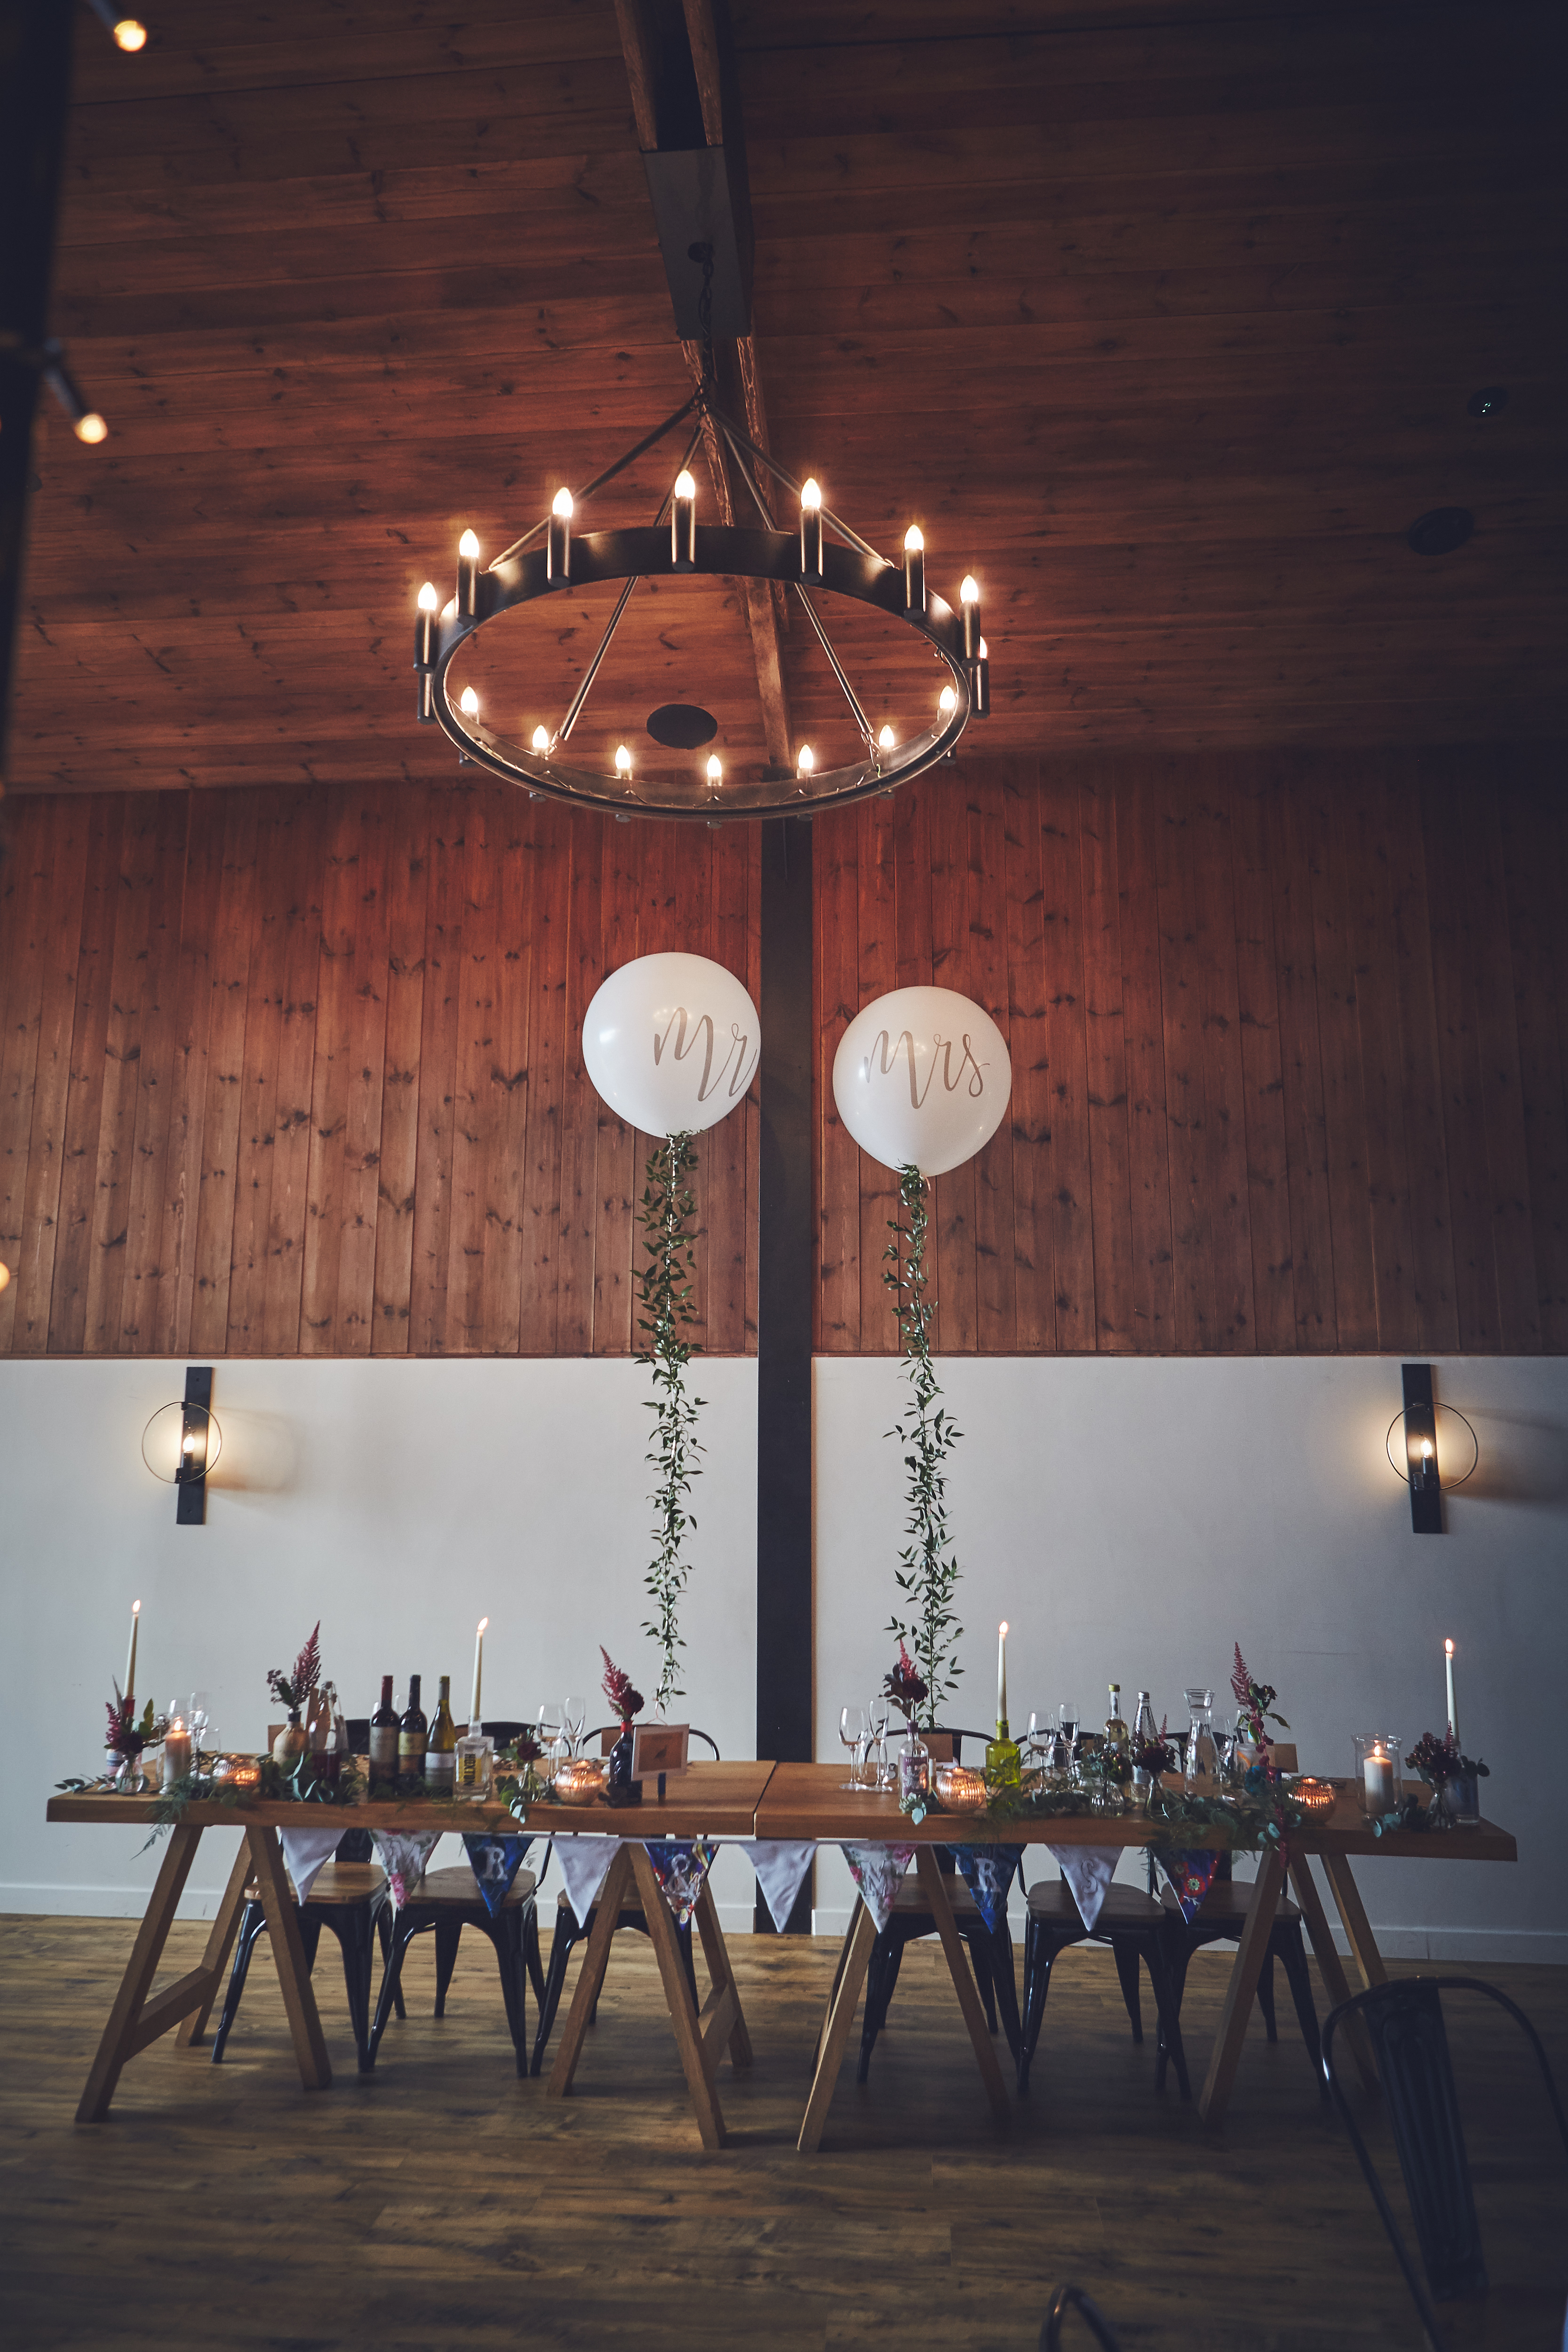 The Stable Barn at Upton dressed for a Wedding Breakfast with Mr & Mrs oversized balloons